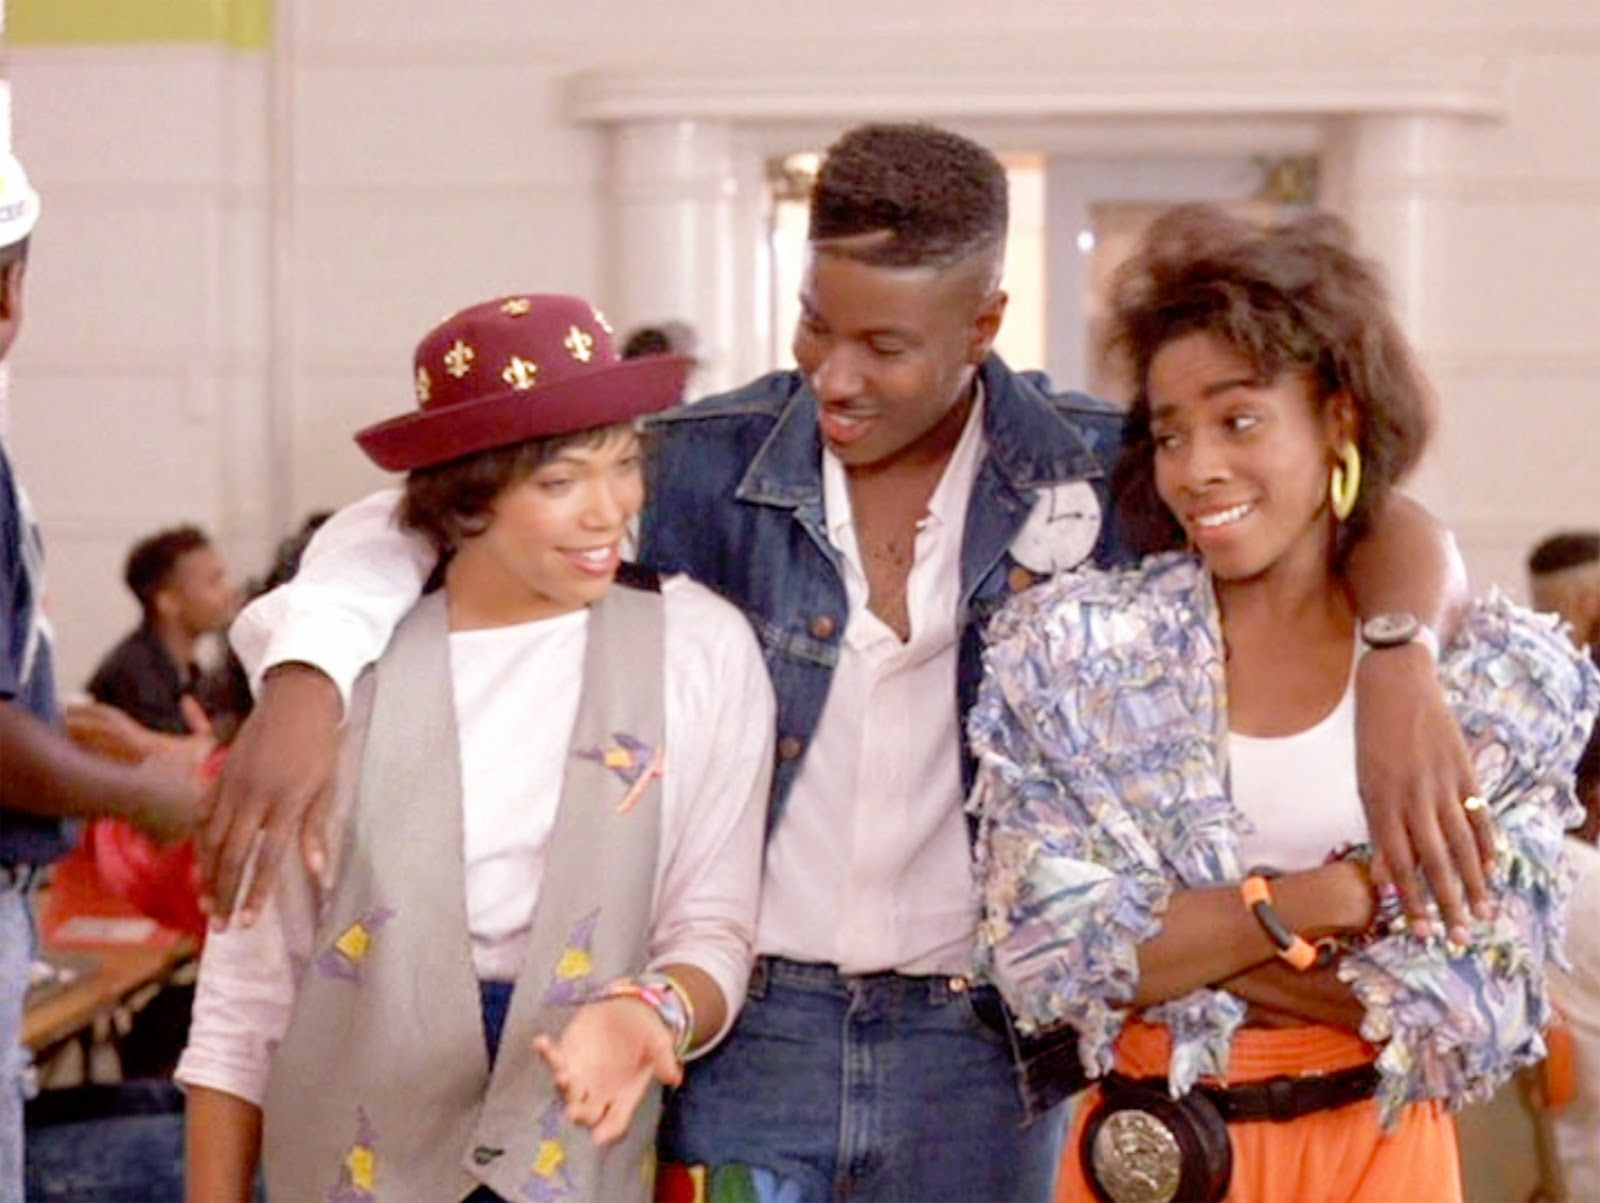 house party the movie Google Search 90s hip hop